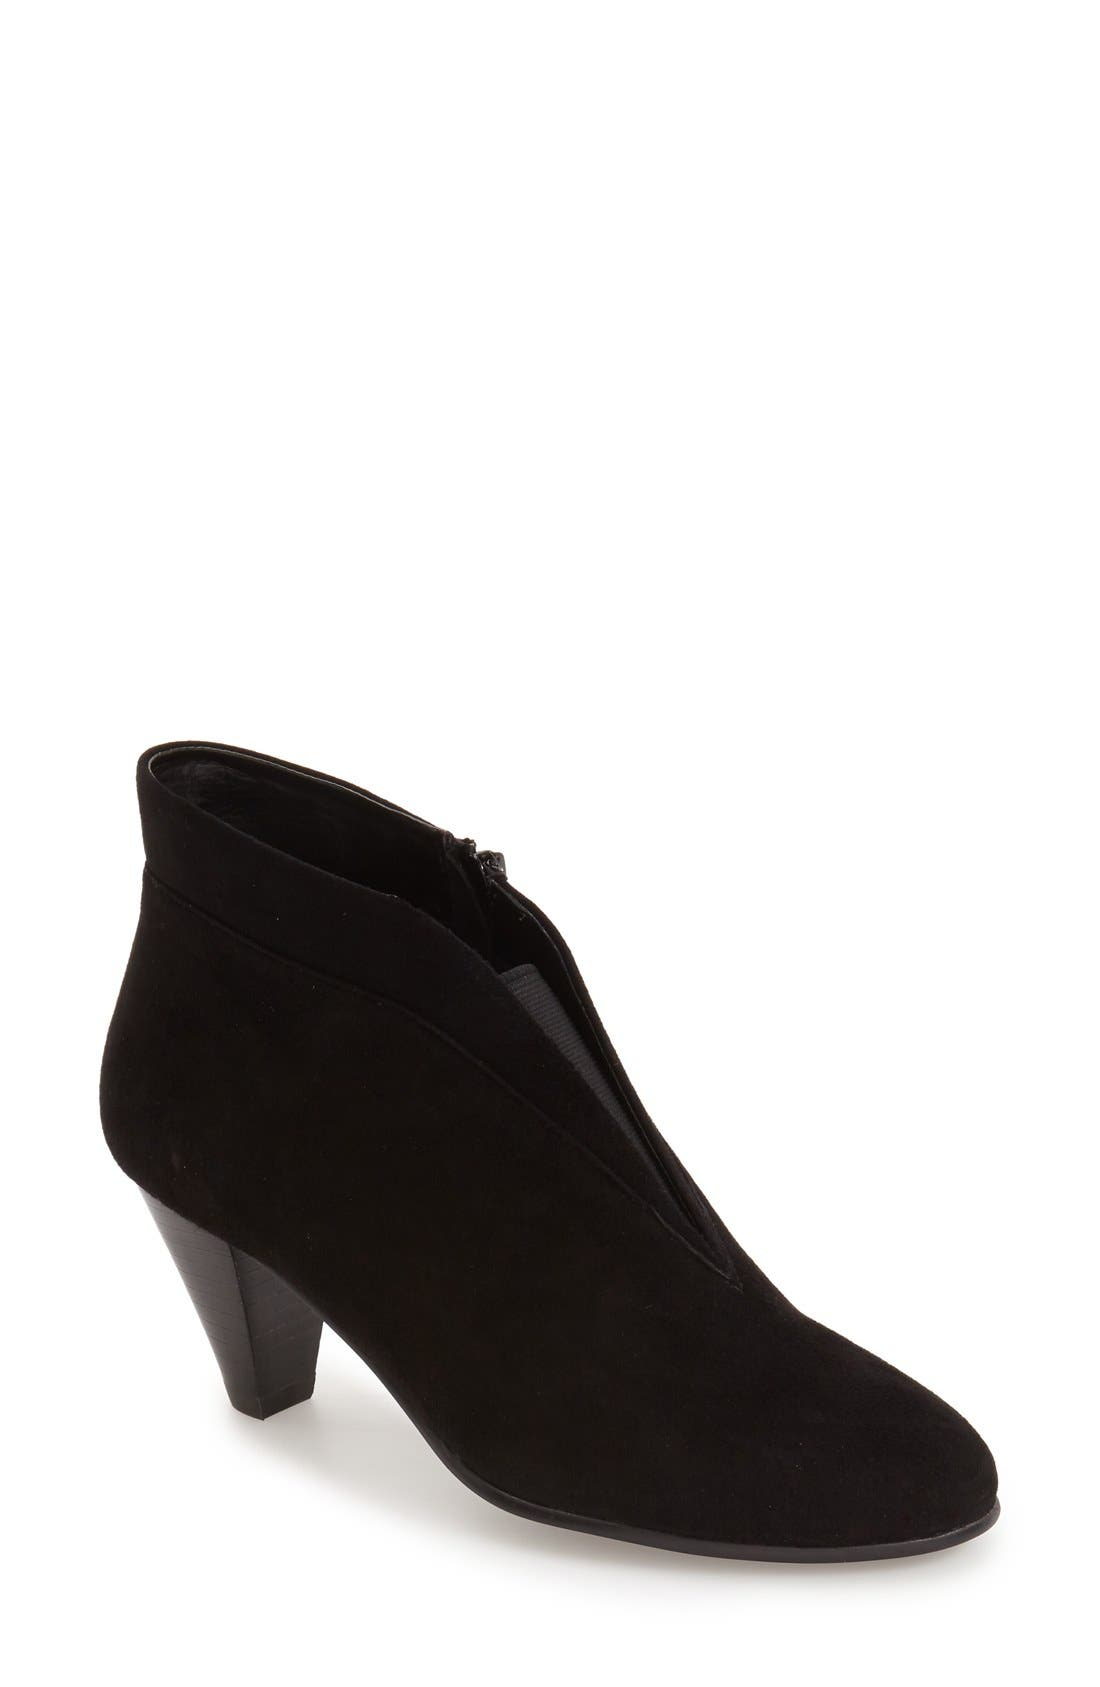 'Natalie' V-Cut Zip Bootie,                         Main,                         color, BLACK SUEDE